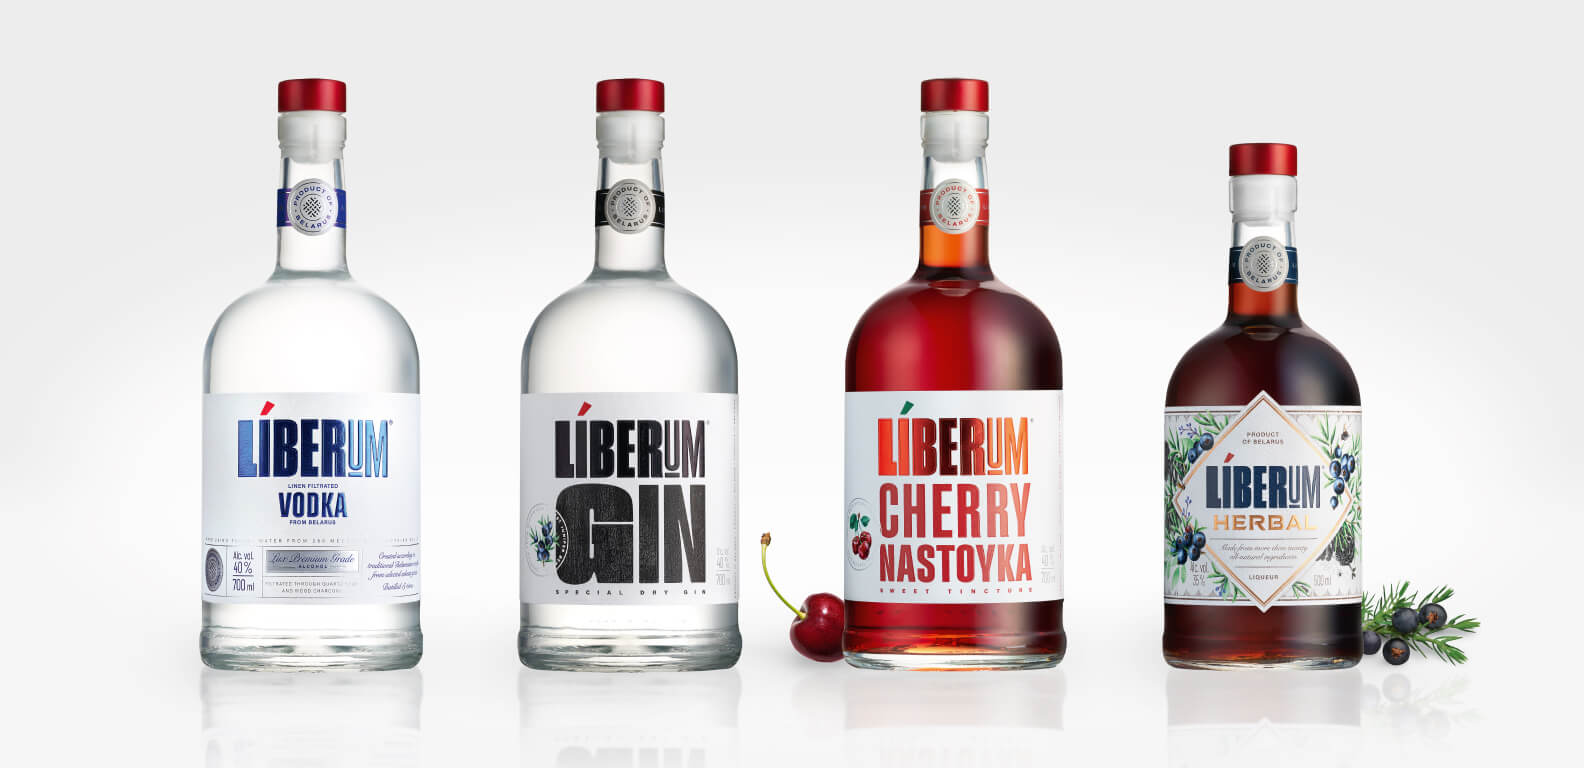 Liberum - bottle and label design